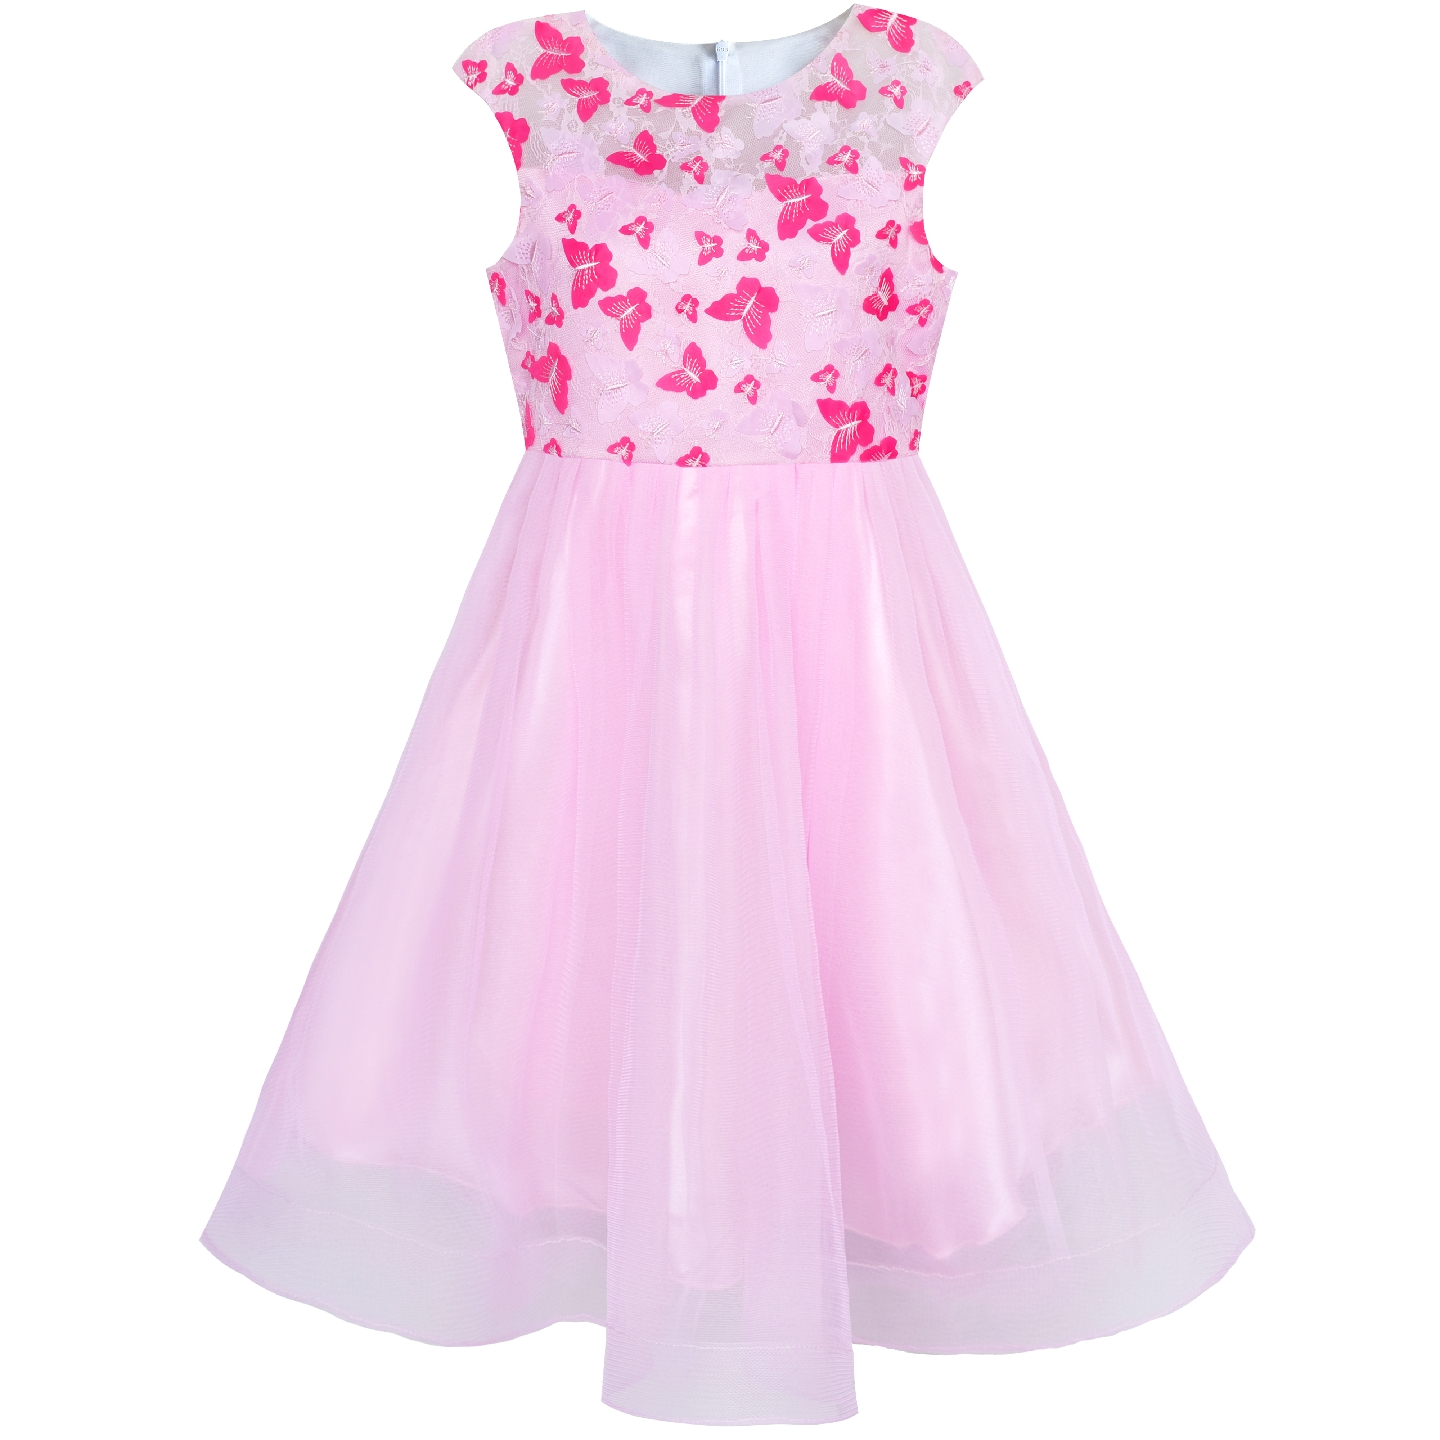 Flower Girl Dress Butterfly Pink Bridal Veil Wedding Bridesmaid 2019 Summer Princess Party Dresses Kids Clothes Pageant Sundress 18w led outdoor waterproof wall light ip65 modern nordic style indoor wall lamps living room porch garden lamp ac90 260v lp 42